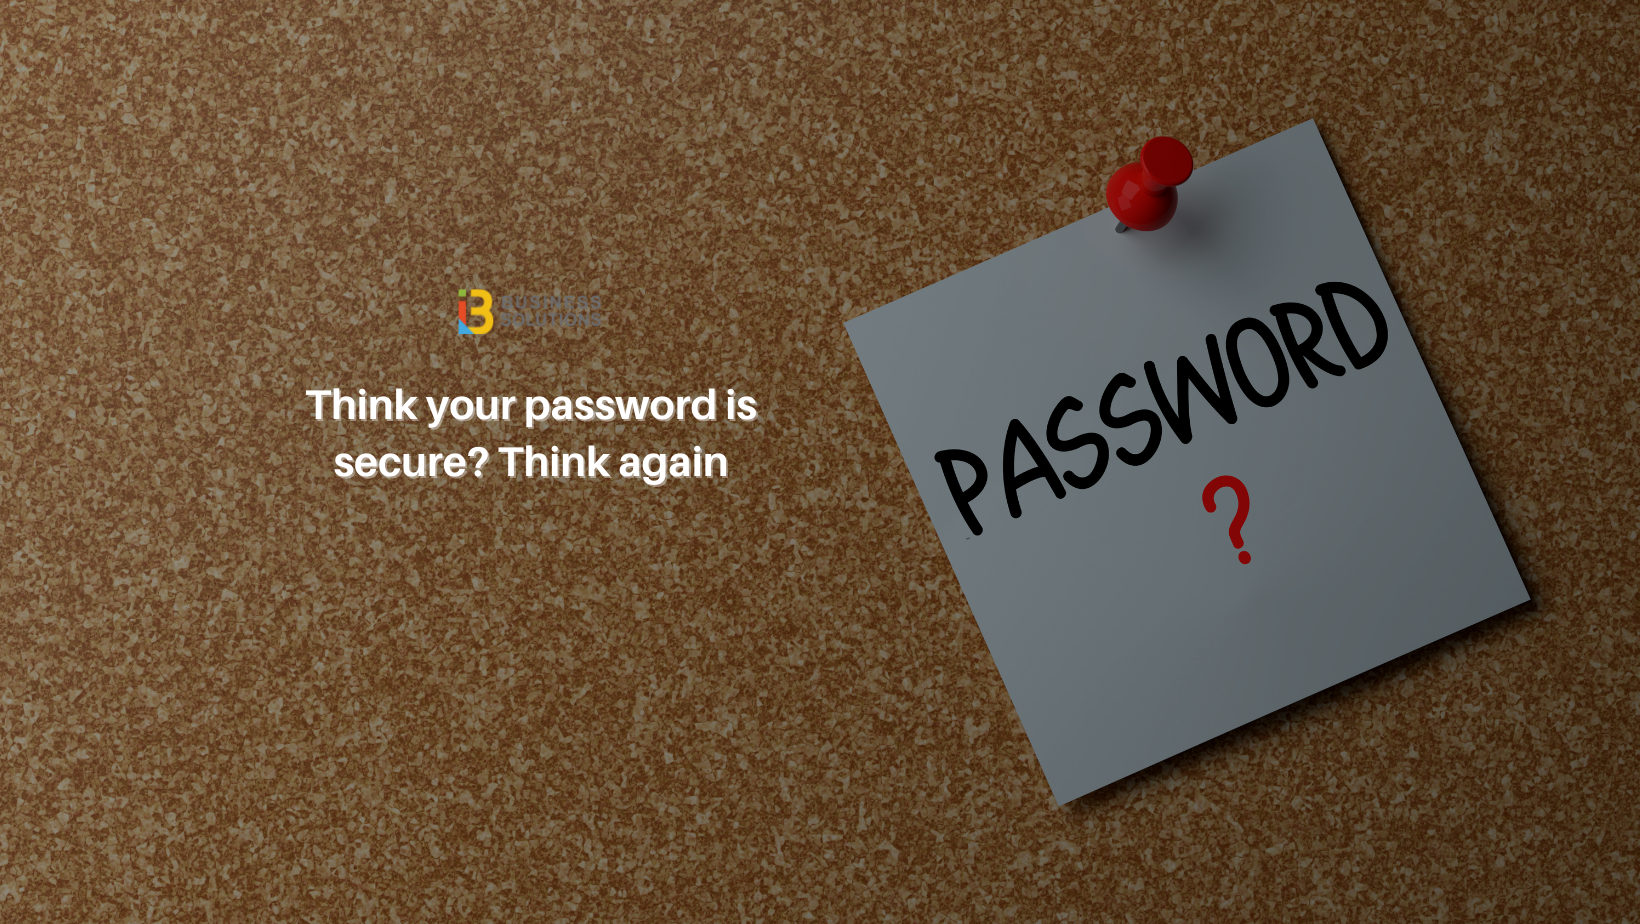 Think your password is secure? Think again